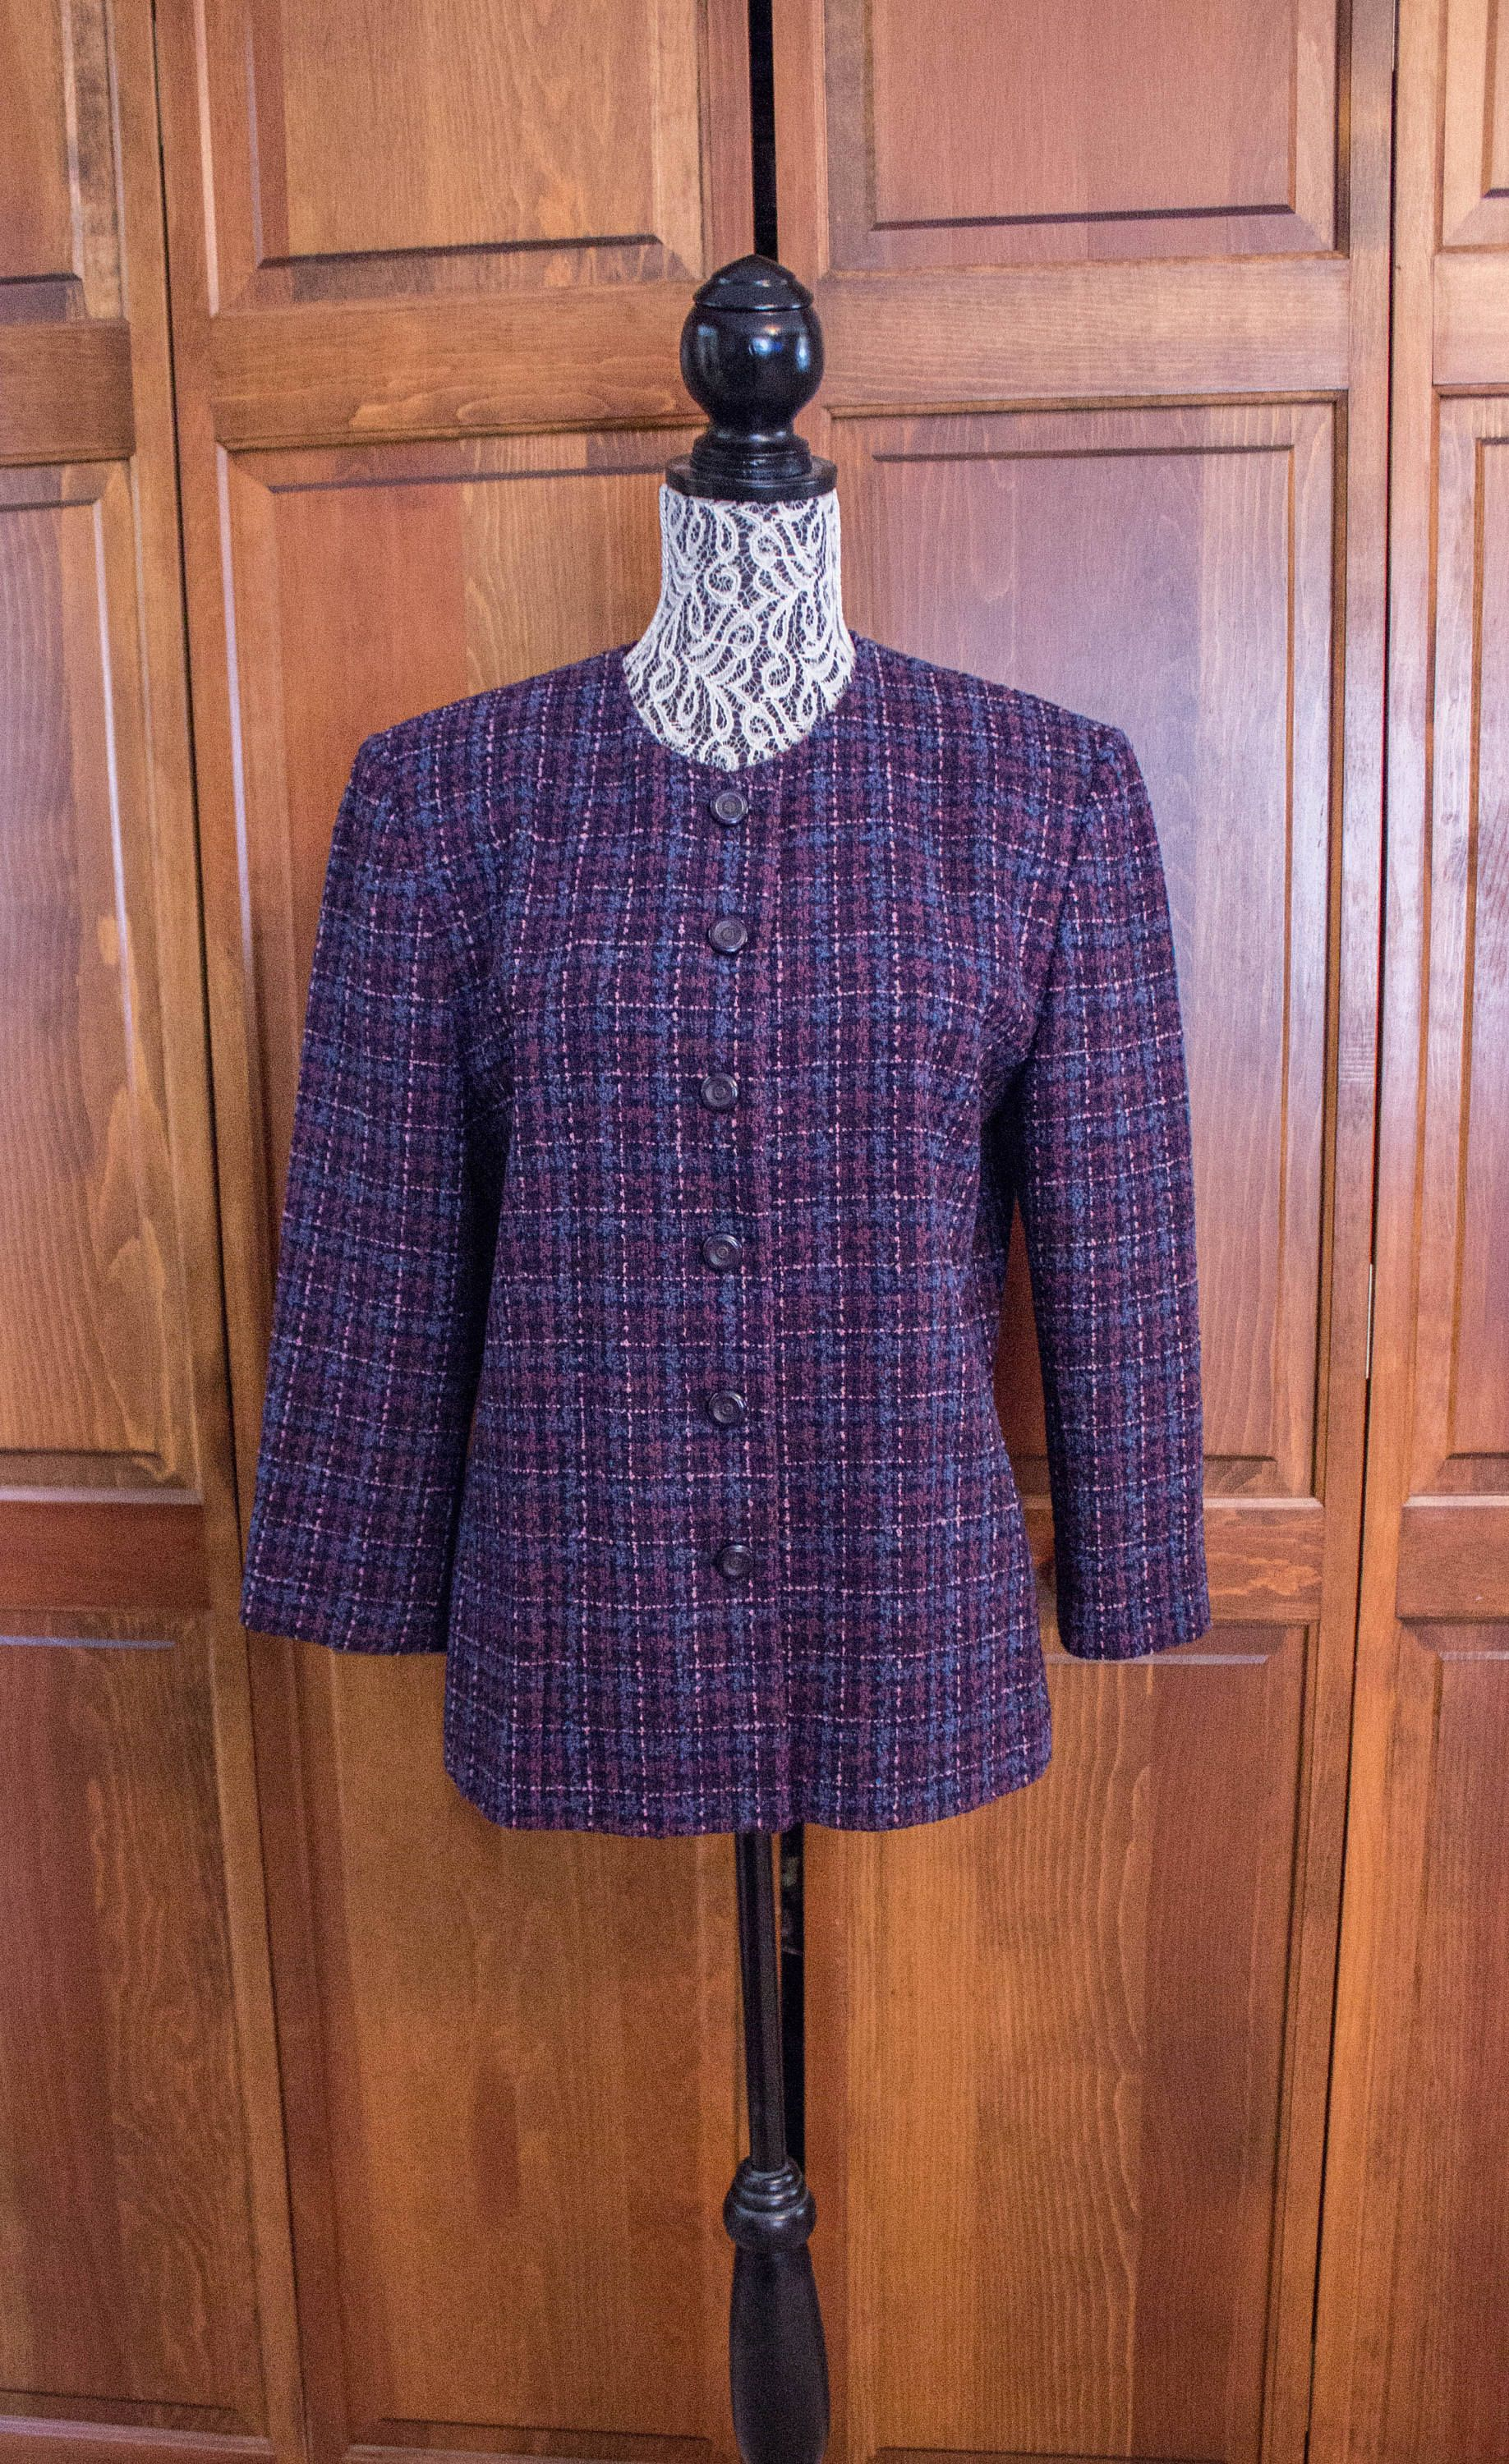 9185eeef9 Vintage Pendleton Women's Purple and Blue Wool Blazer- Size 10 by  JenuineCollection on Etsy